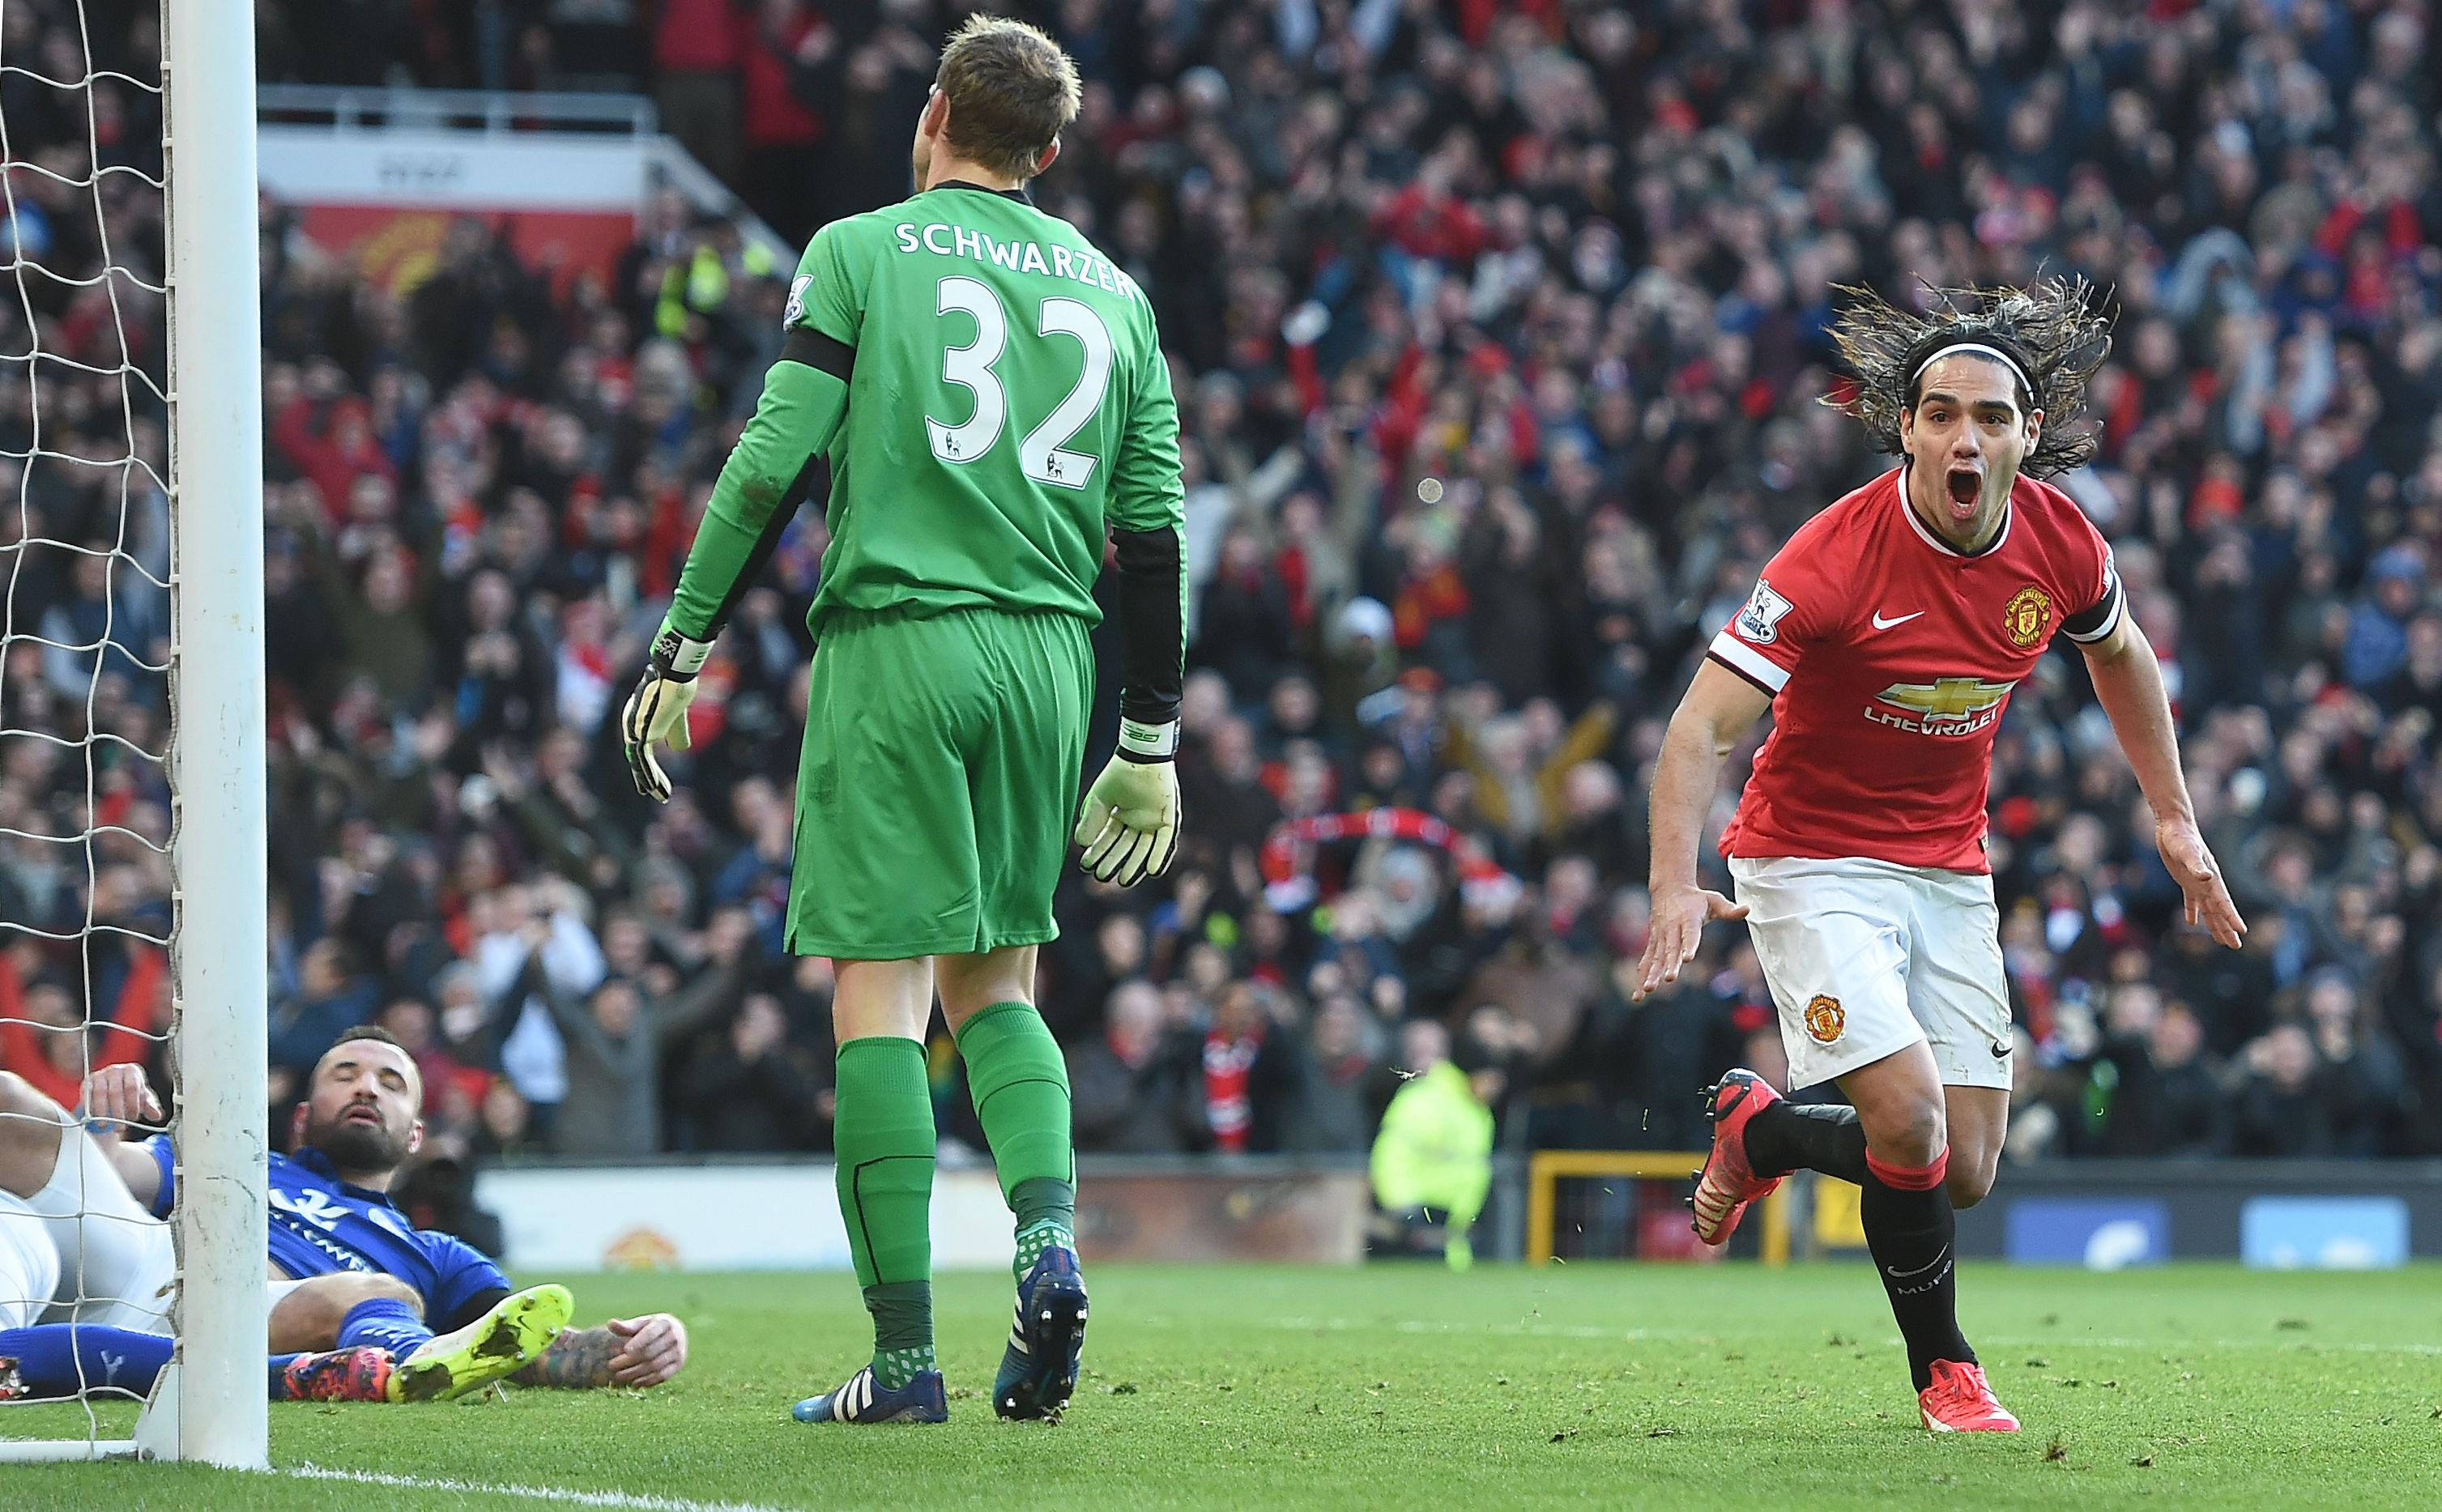 Falcao scores in United win; Sturridge nets on injury return